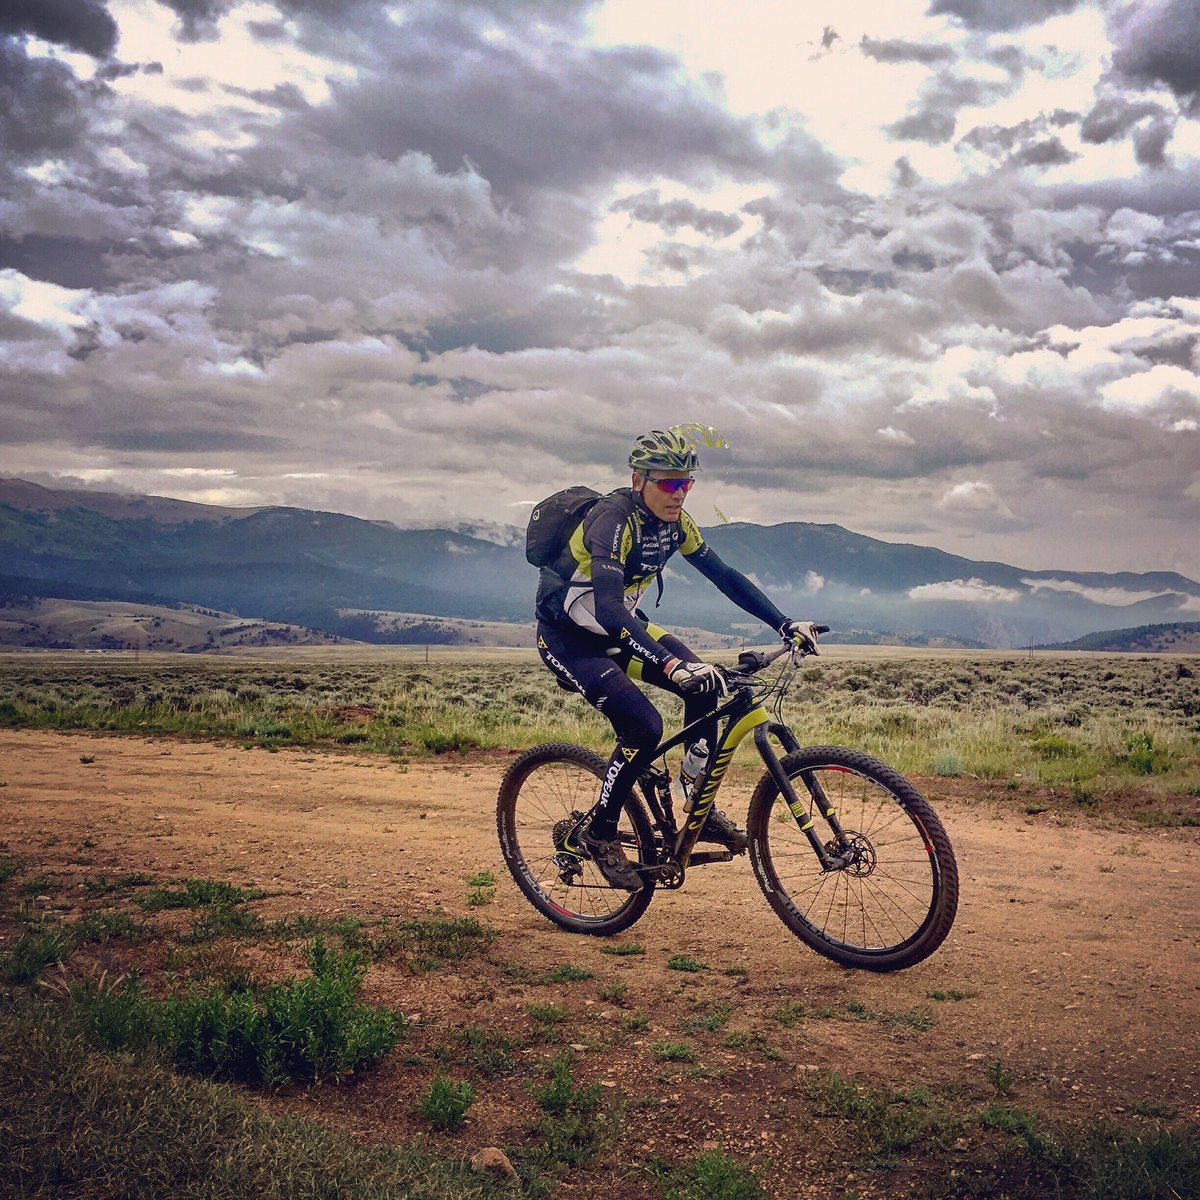 Dodging storms on the Leadville Trail 100 course during the LRS Camp of Champions. Photo by Craig Martin #ergonbike https://t.co/U4dOdppPfF